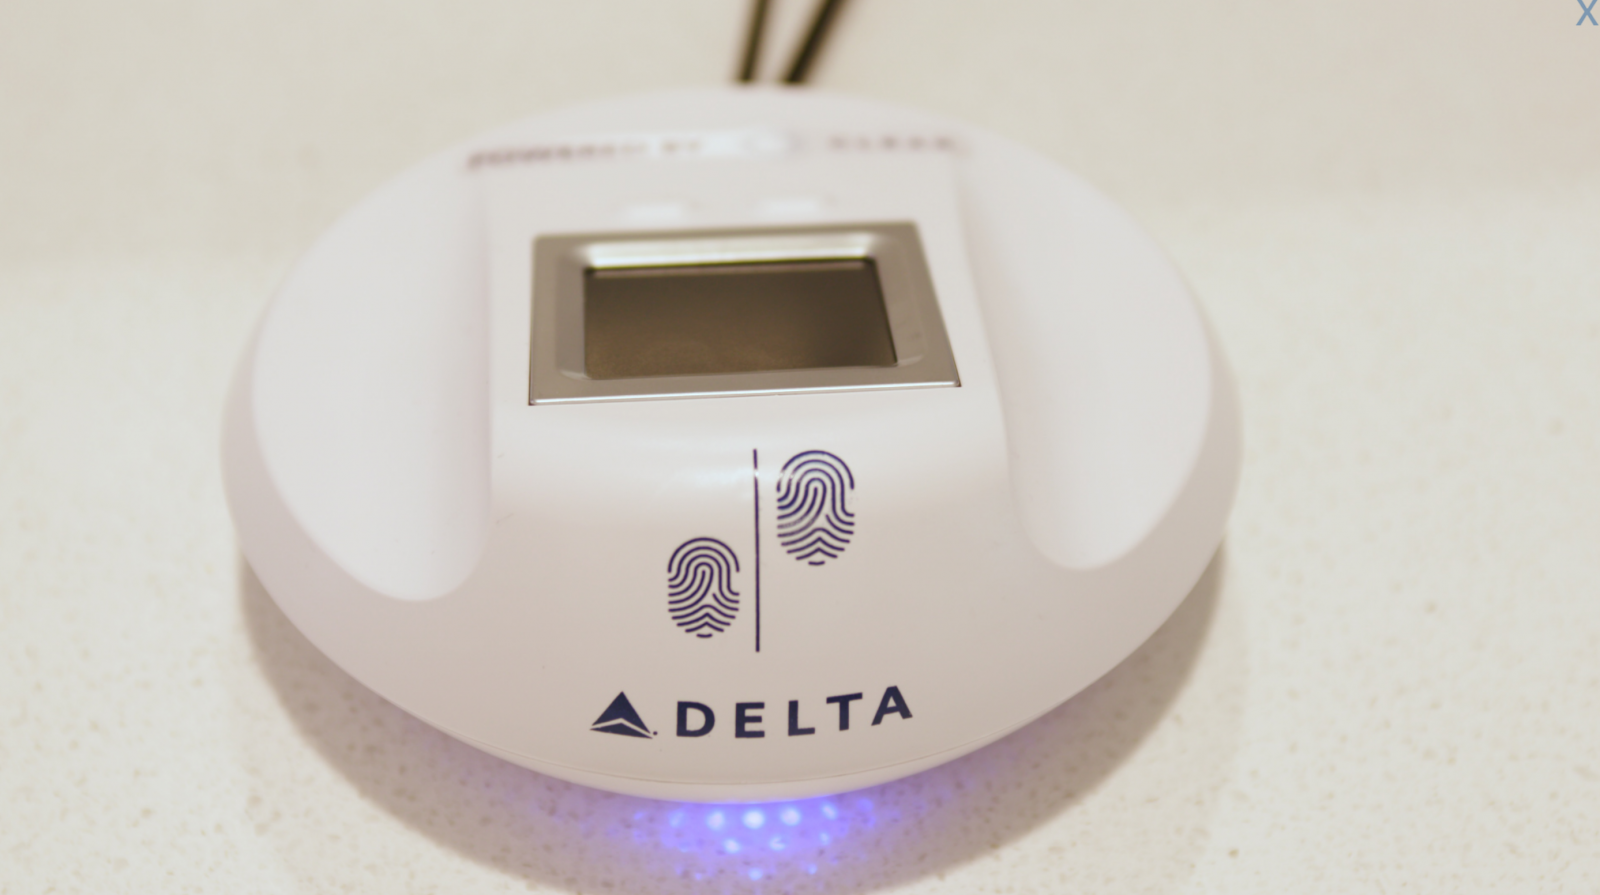 Delta fingerprint scanner